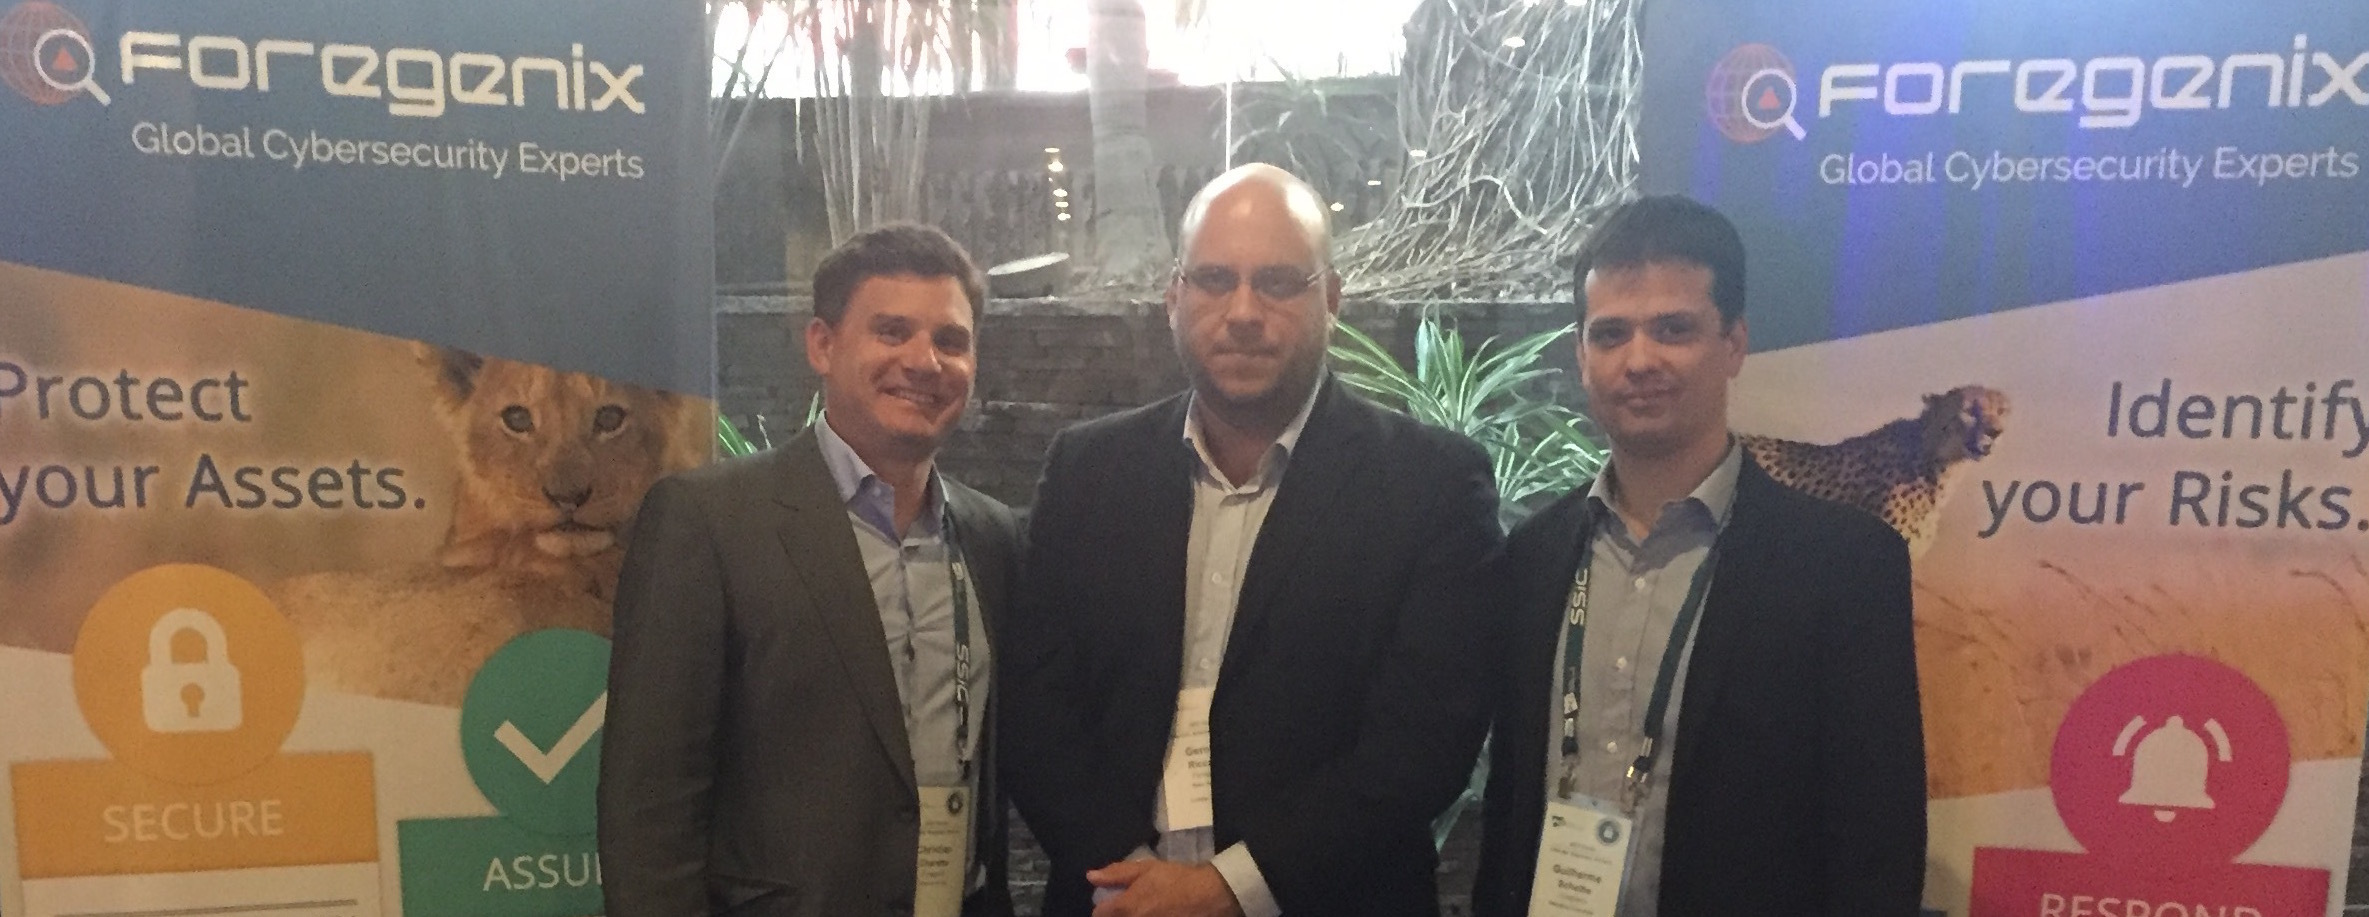 Christian Charette, director of compliance and risk services and MD of Foregenix Latin America, German Riccardi, sales manager for Latin America and Guilherme Scheibe managing consultant Brazil.